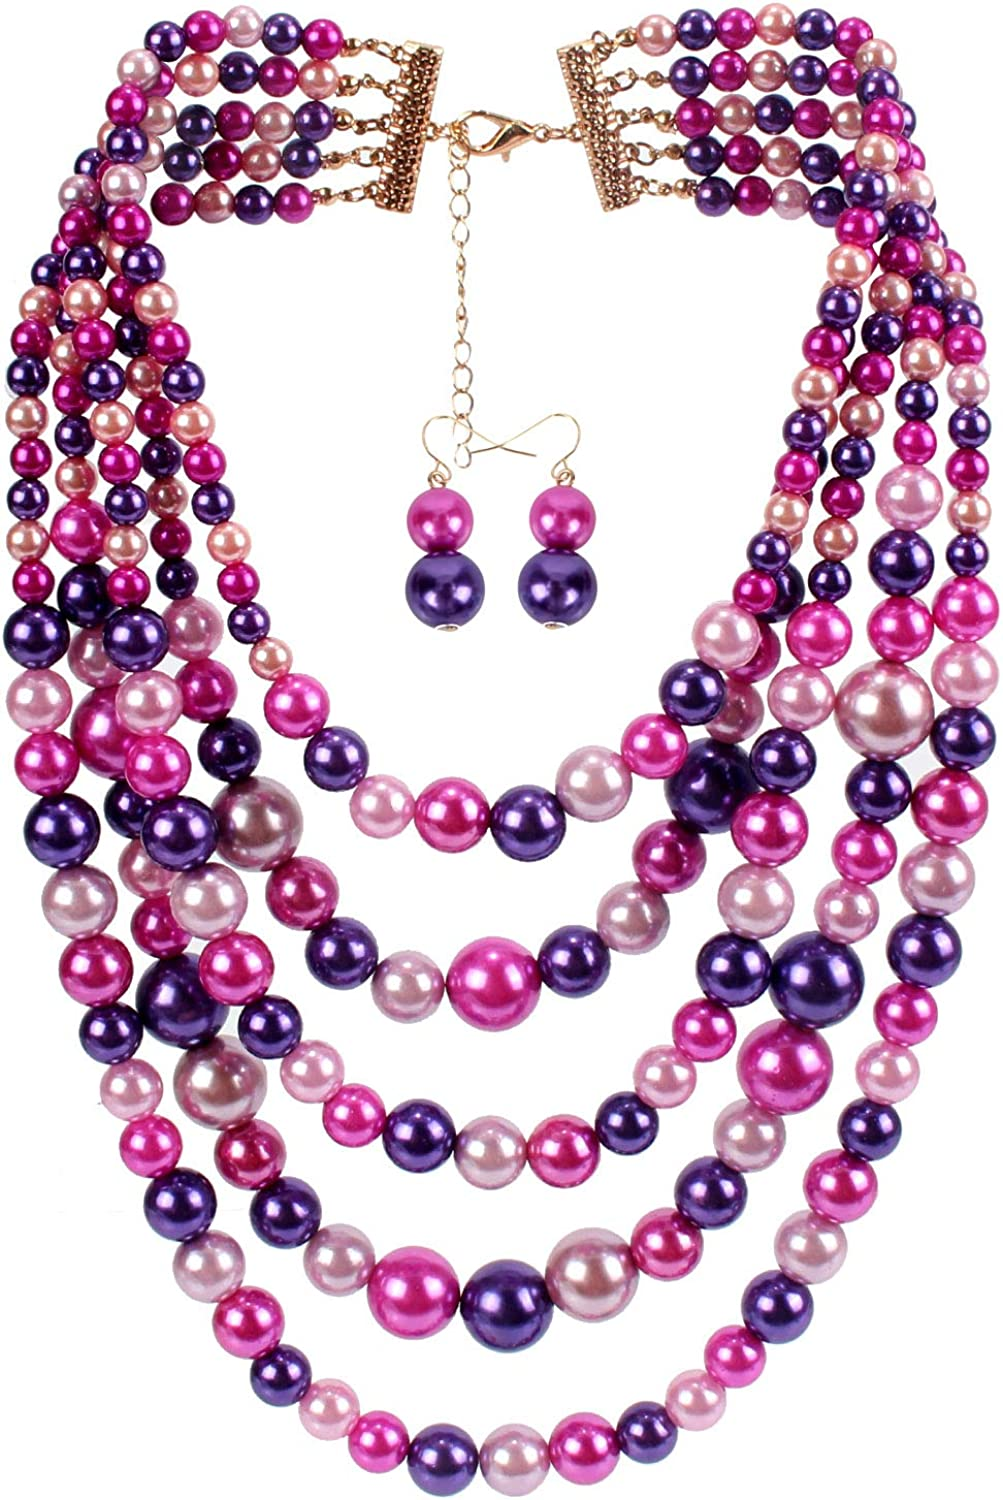 HaHaGirl Women's Multi-Strand Simulated Pearl Strands Necklaces for Women Jewelry